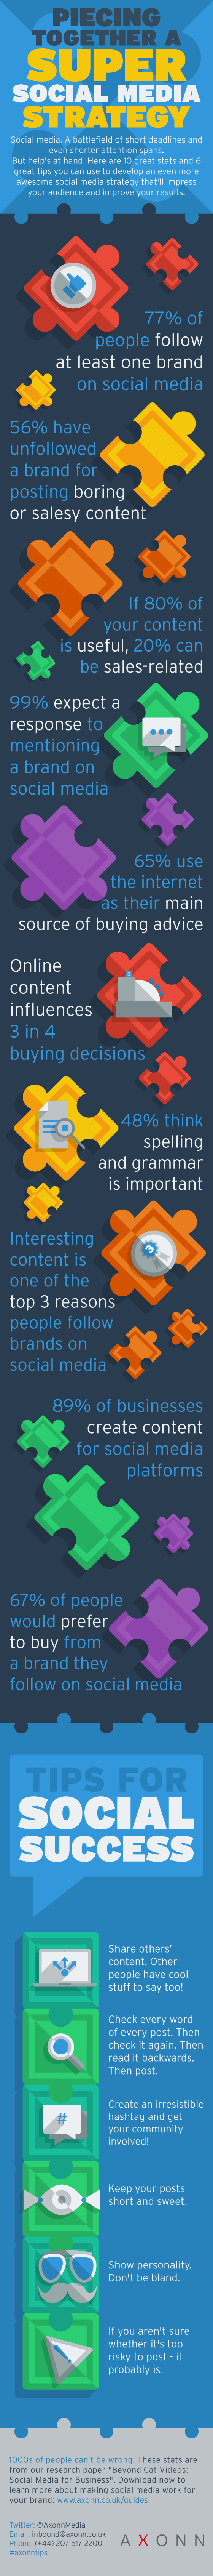 Piecing Together A Super #SocialMedia Marketing Strategy - #infographic #marketing